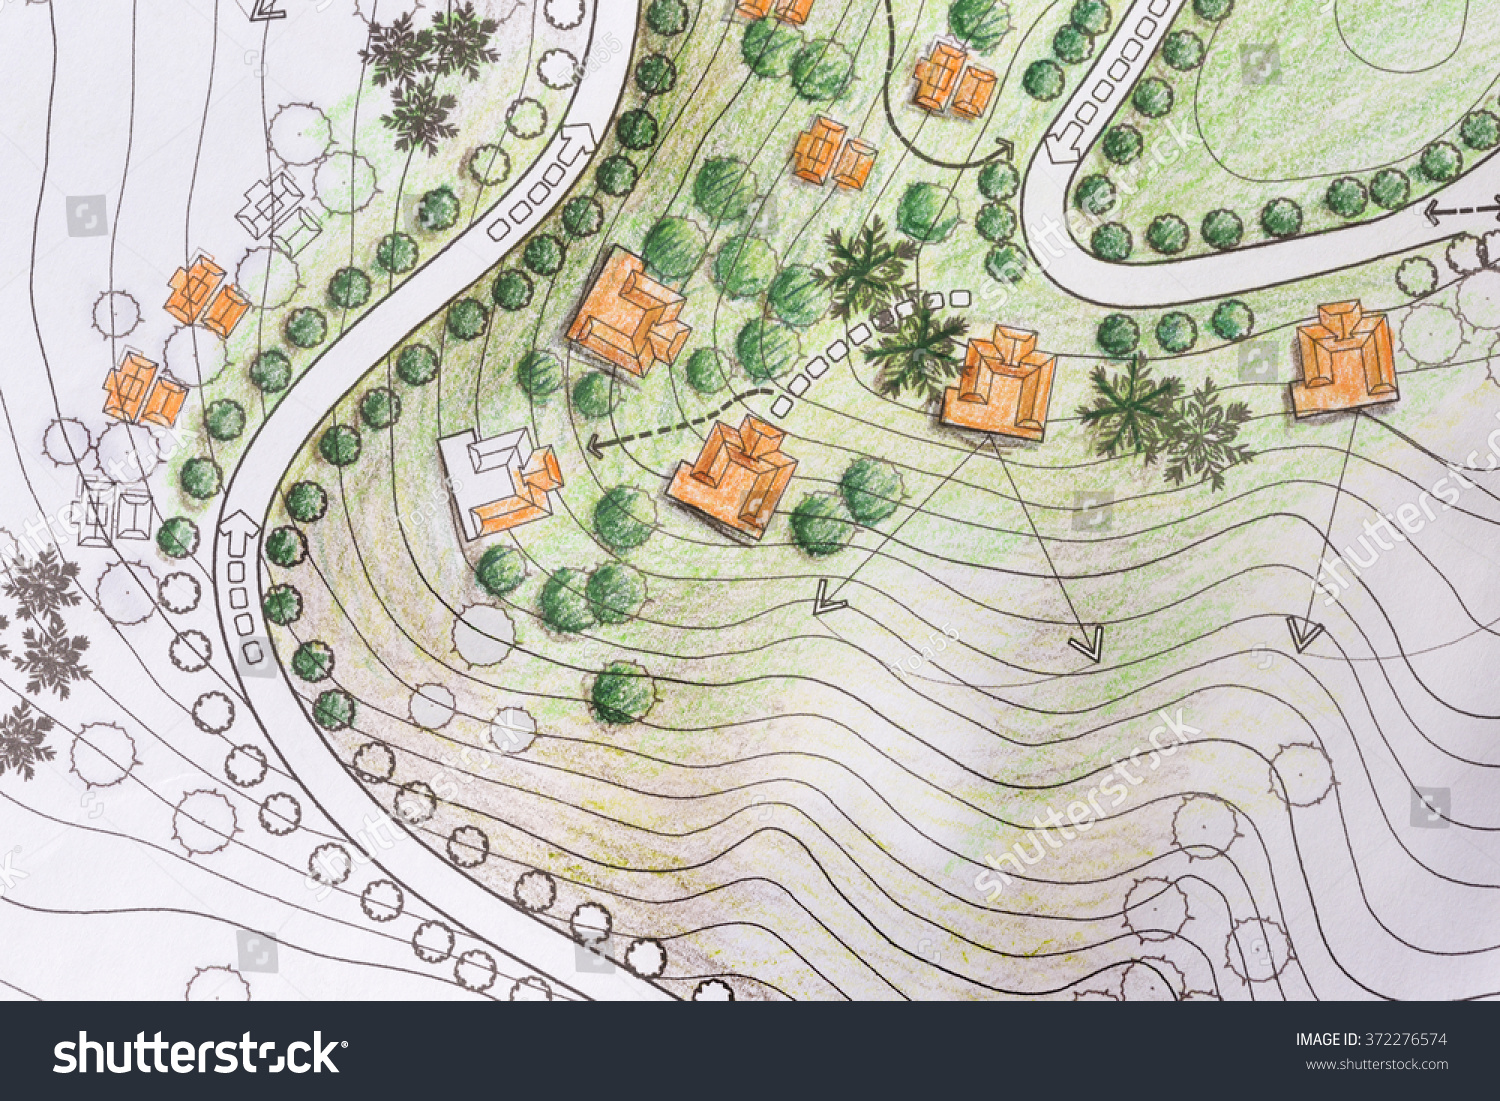 Landscape Architect Designing On Site Analysis Illustration – Site Analysis Plan